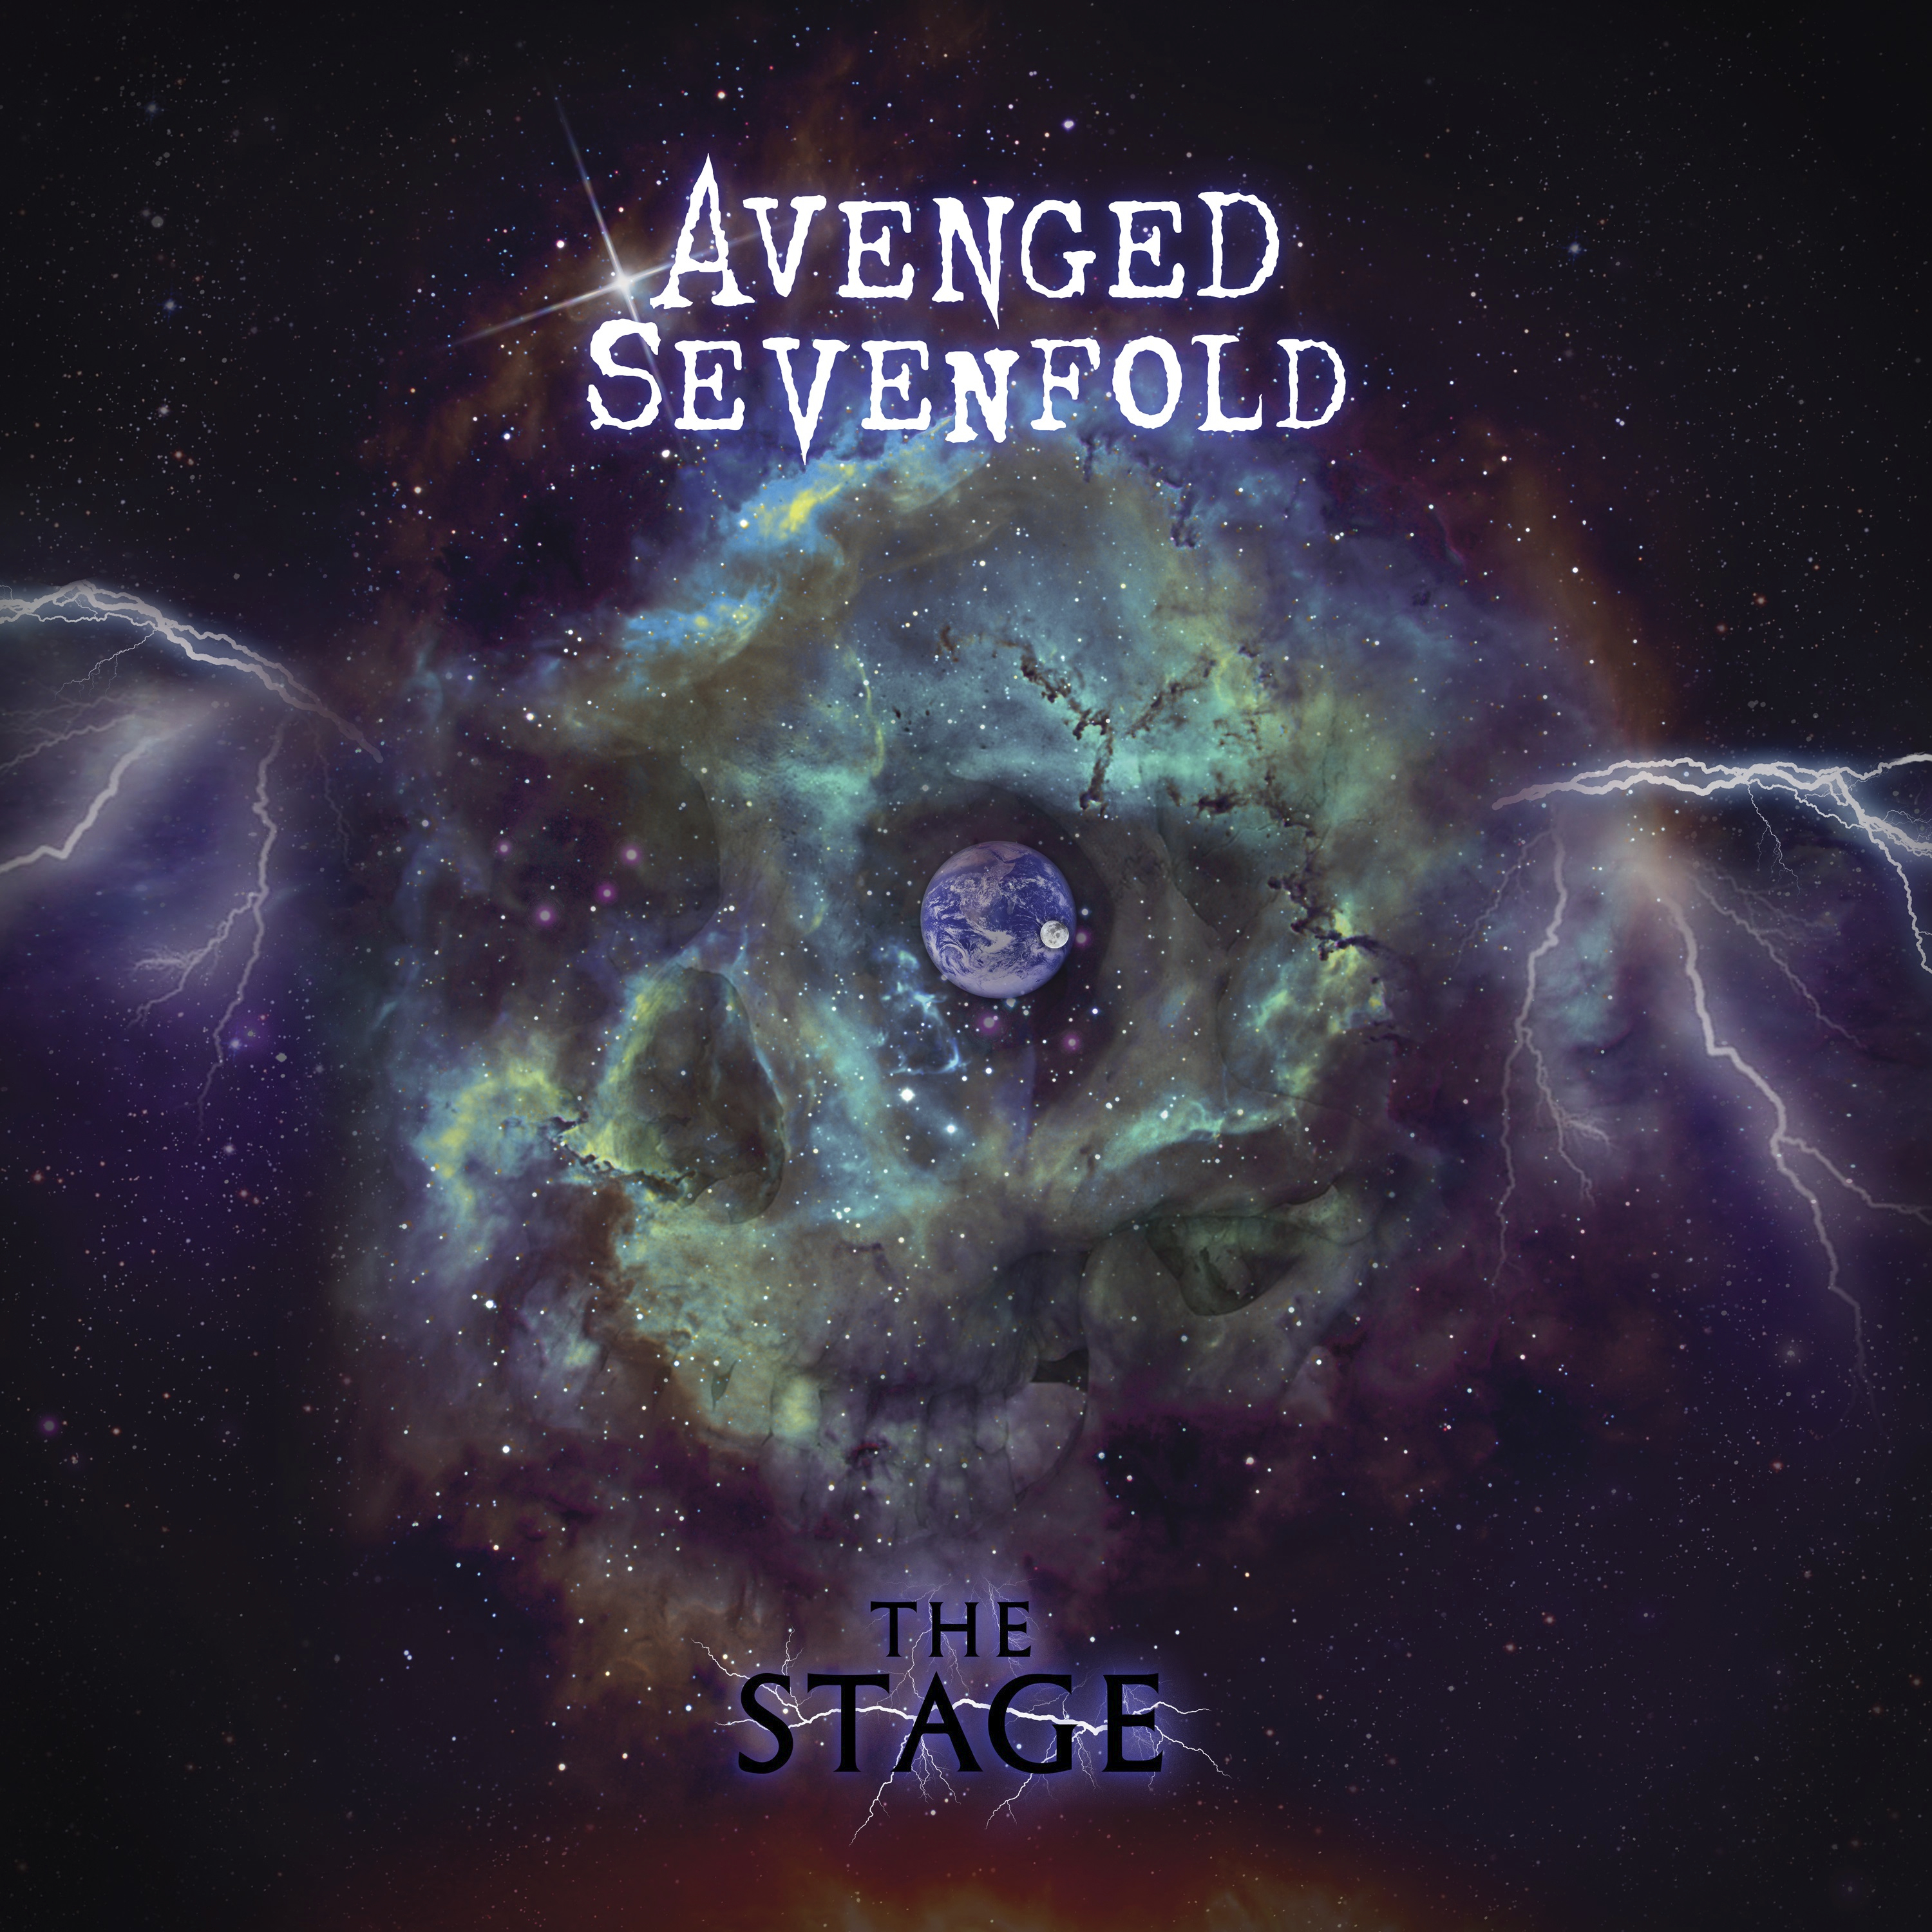 avenged_sevenfold___the_stage_album_artw_38384801_149911442